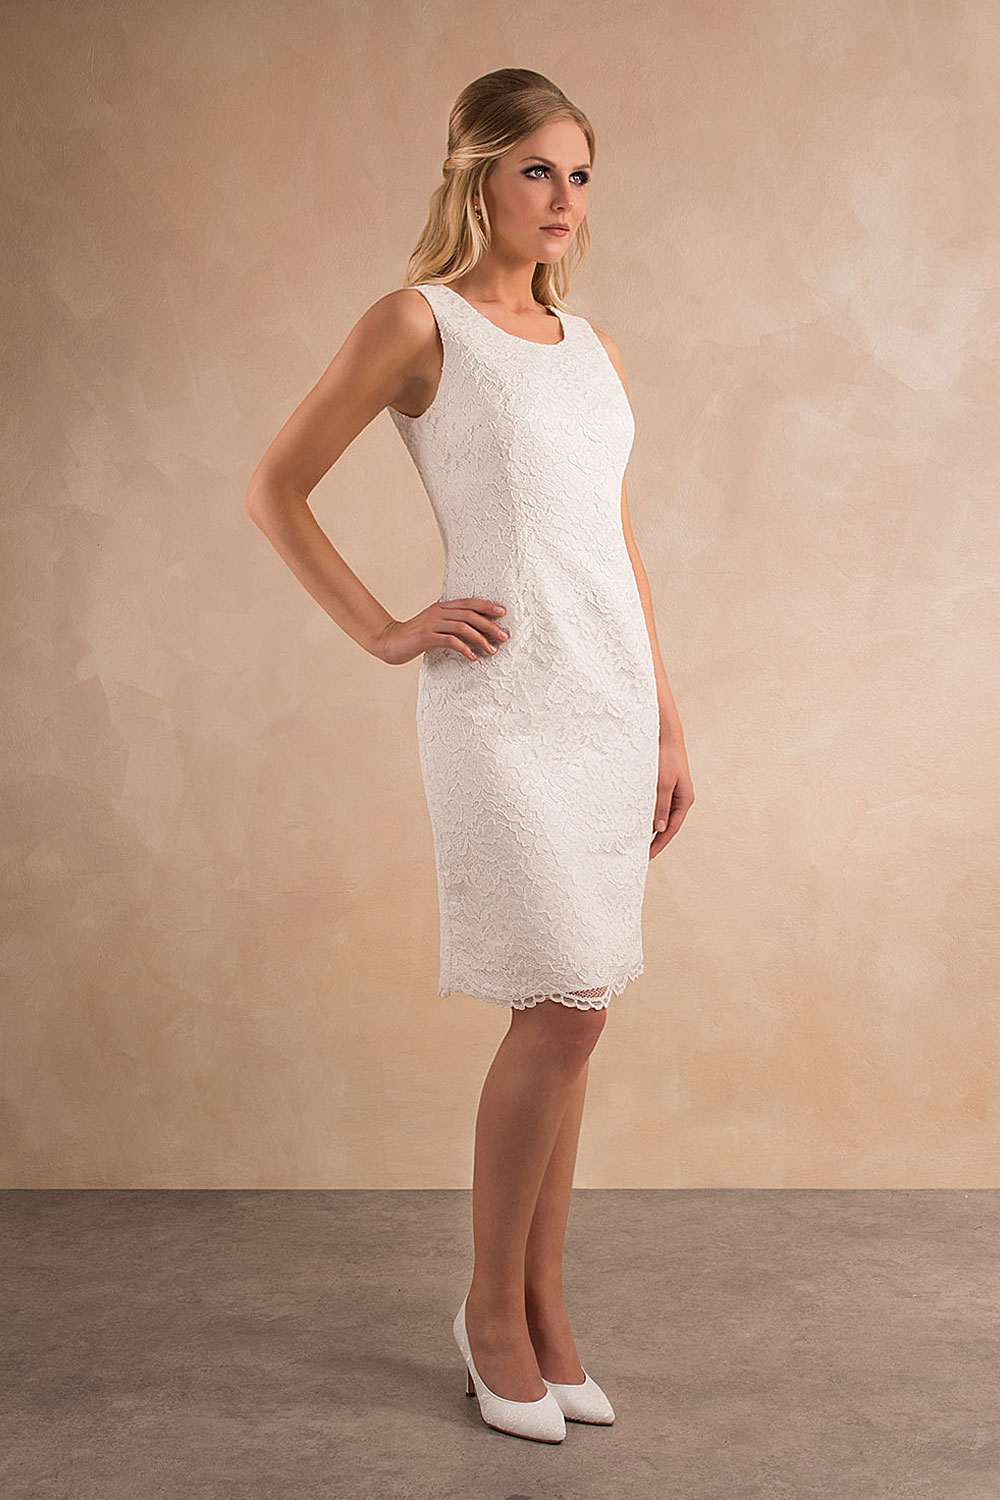 Standesamtkleid A7003 MissGermany-Collection